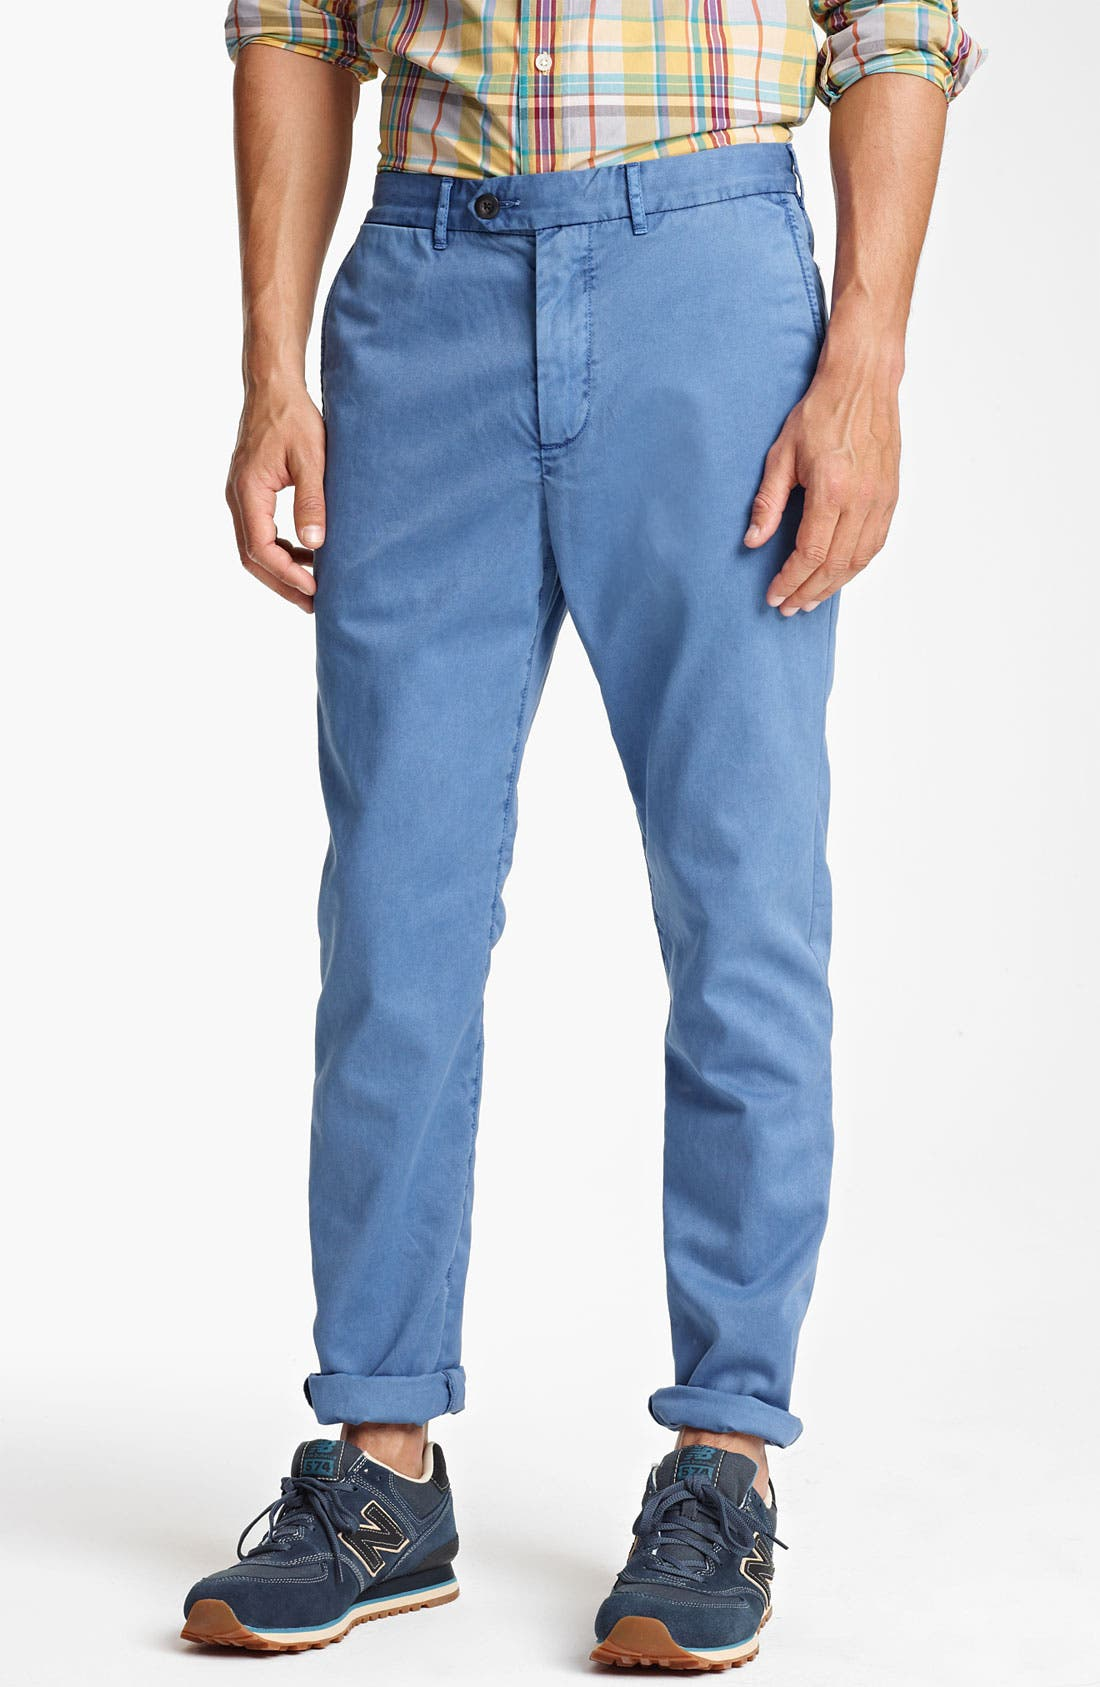 Alternate Image 1 Selected - Jack Spade 'Dolan' Pants